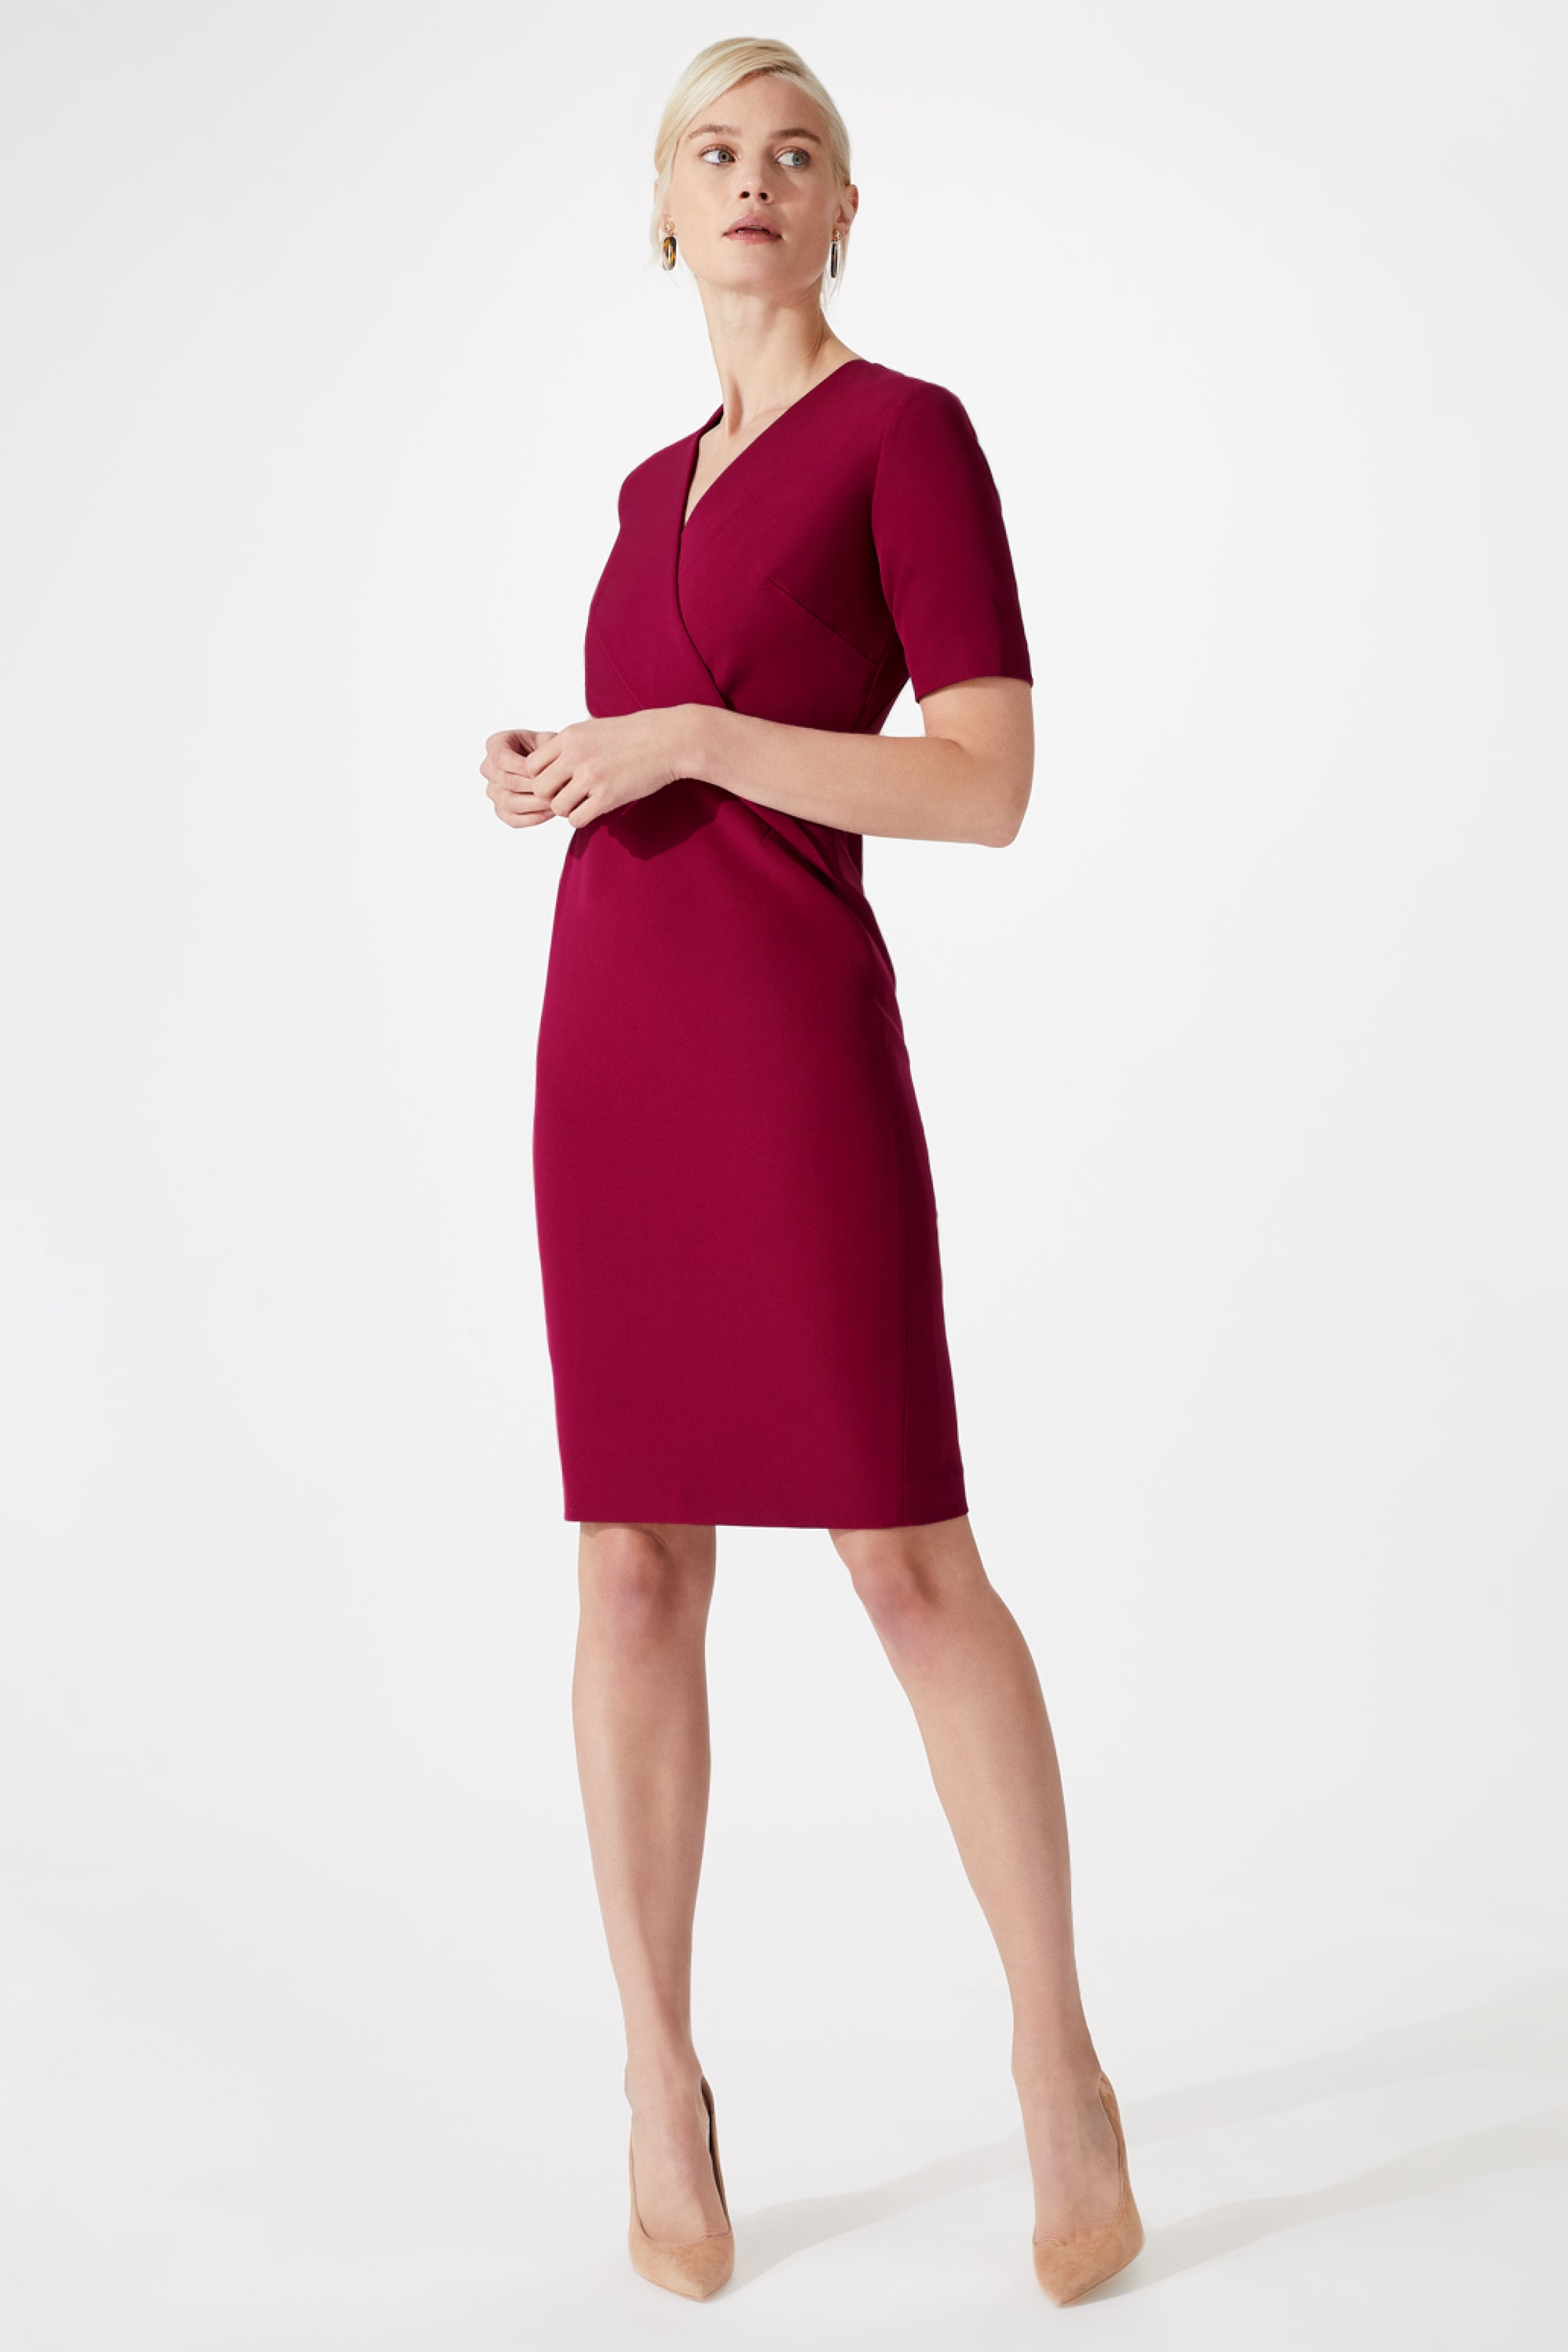 Marlborough Rosehip Dress